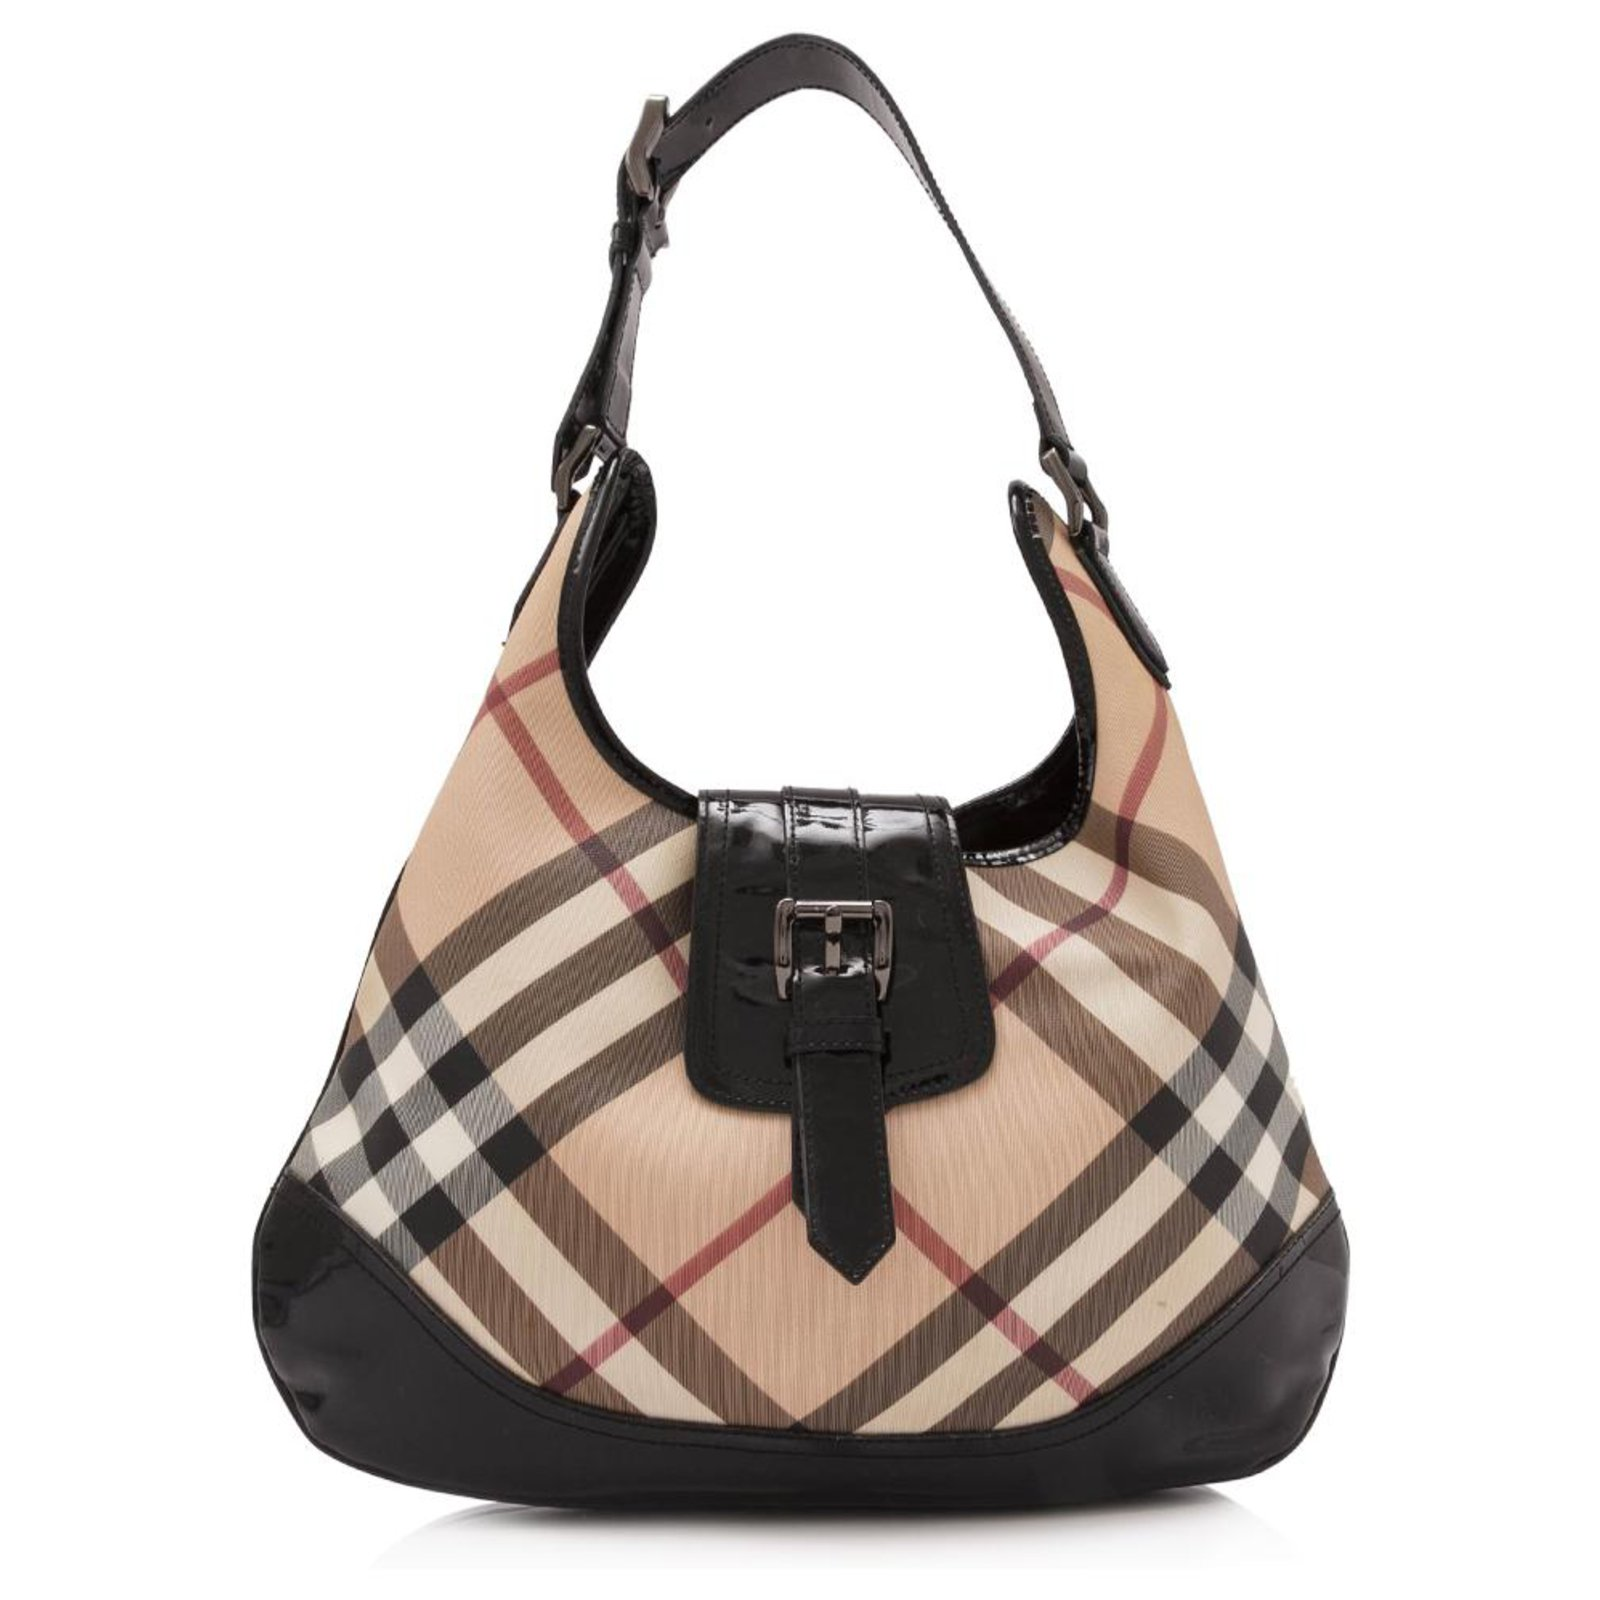 2b75949e69 Burberry Burberry Brown Nova Check Coated Canvas Brooke Hobo Bag Handbags  Leather,Patent leather,